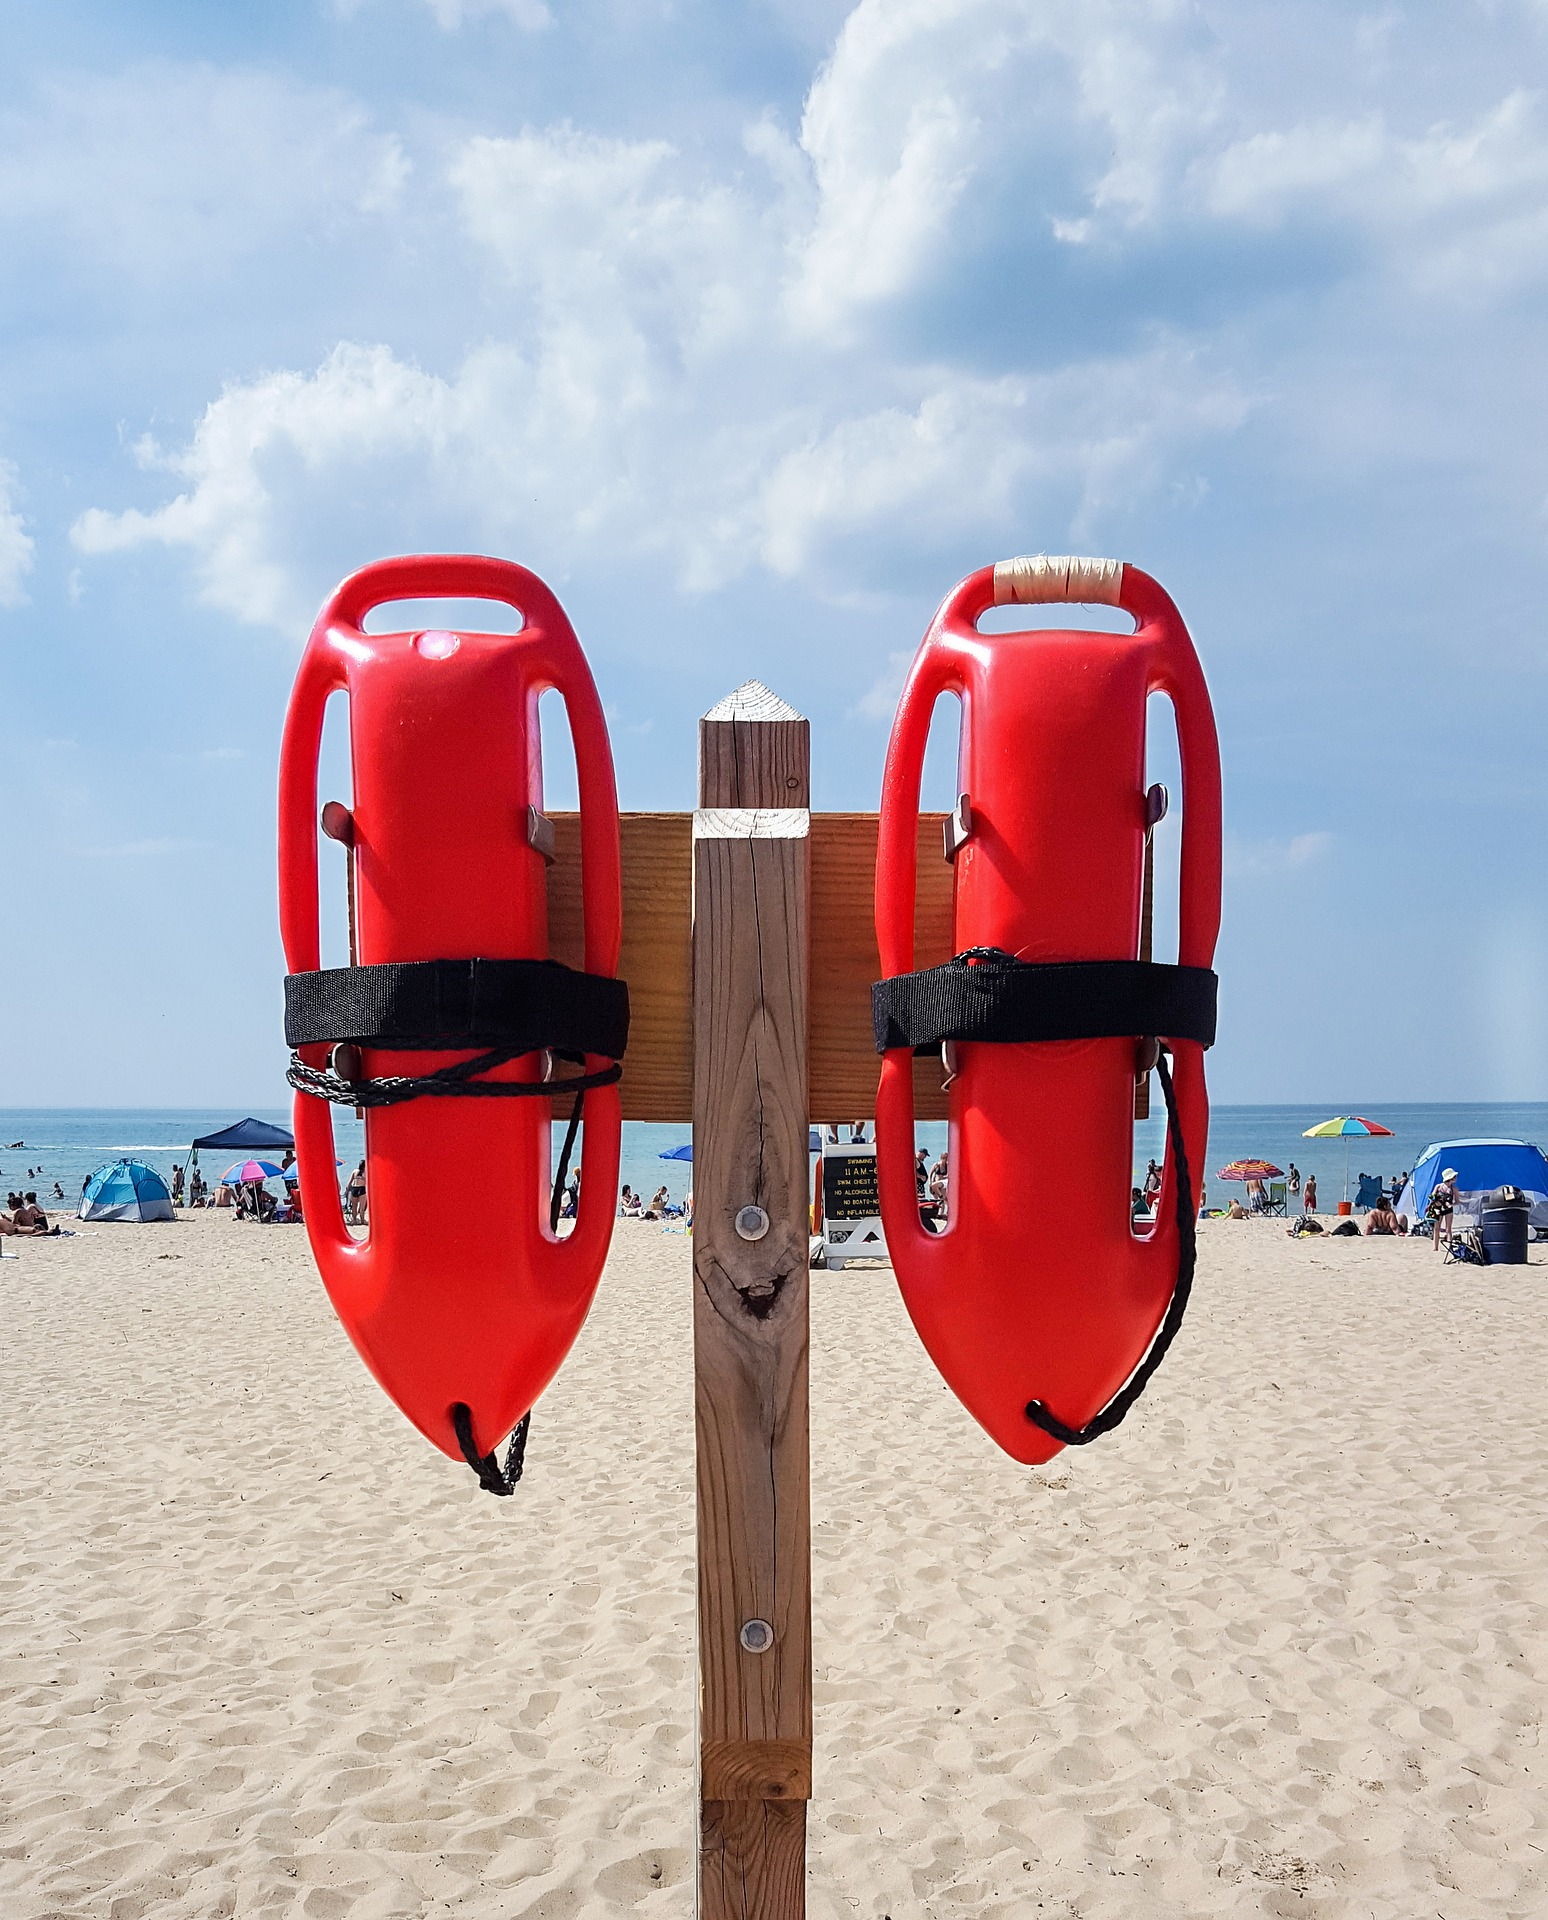 Lifeguard-Buoy